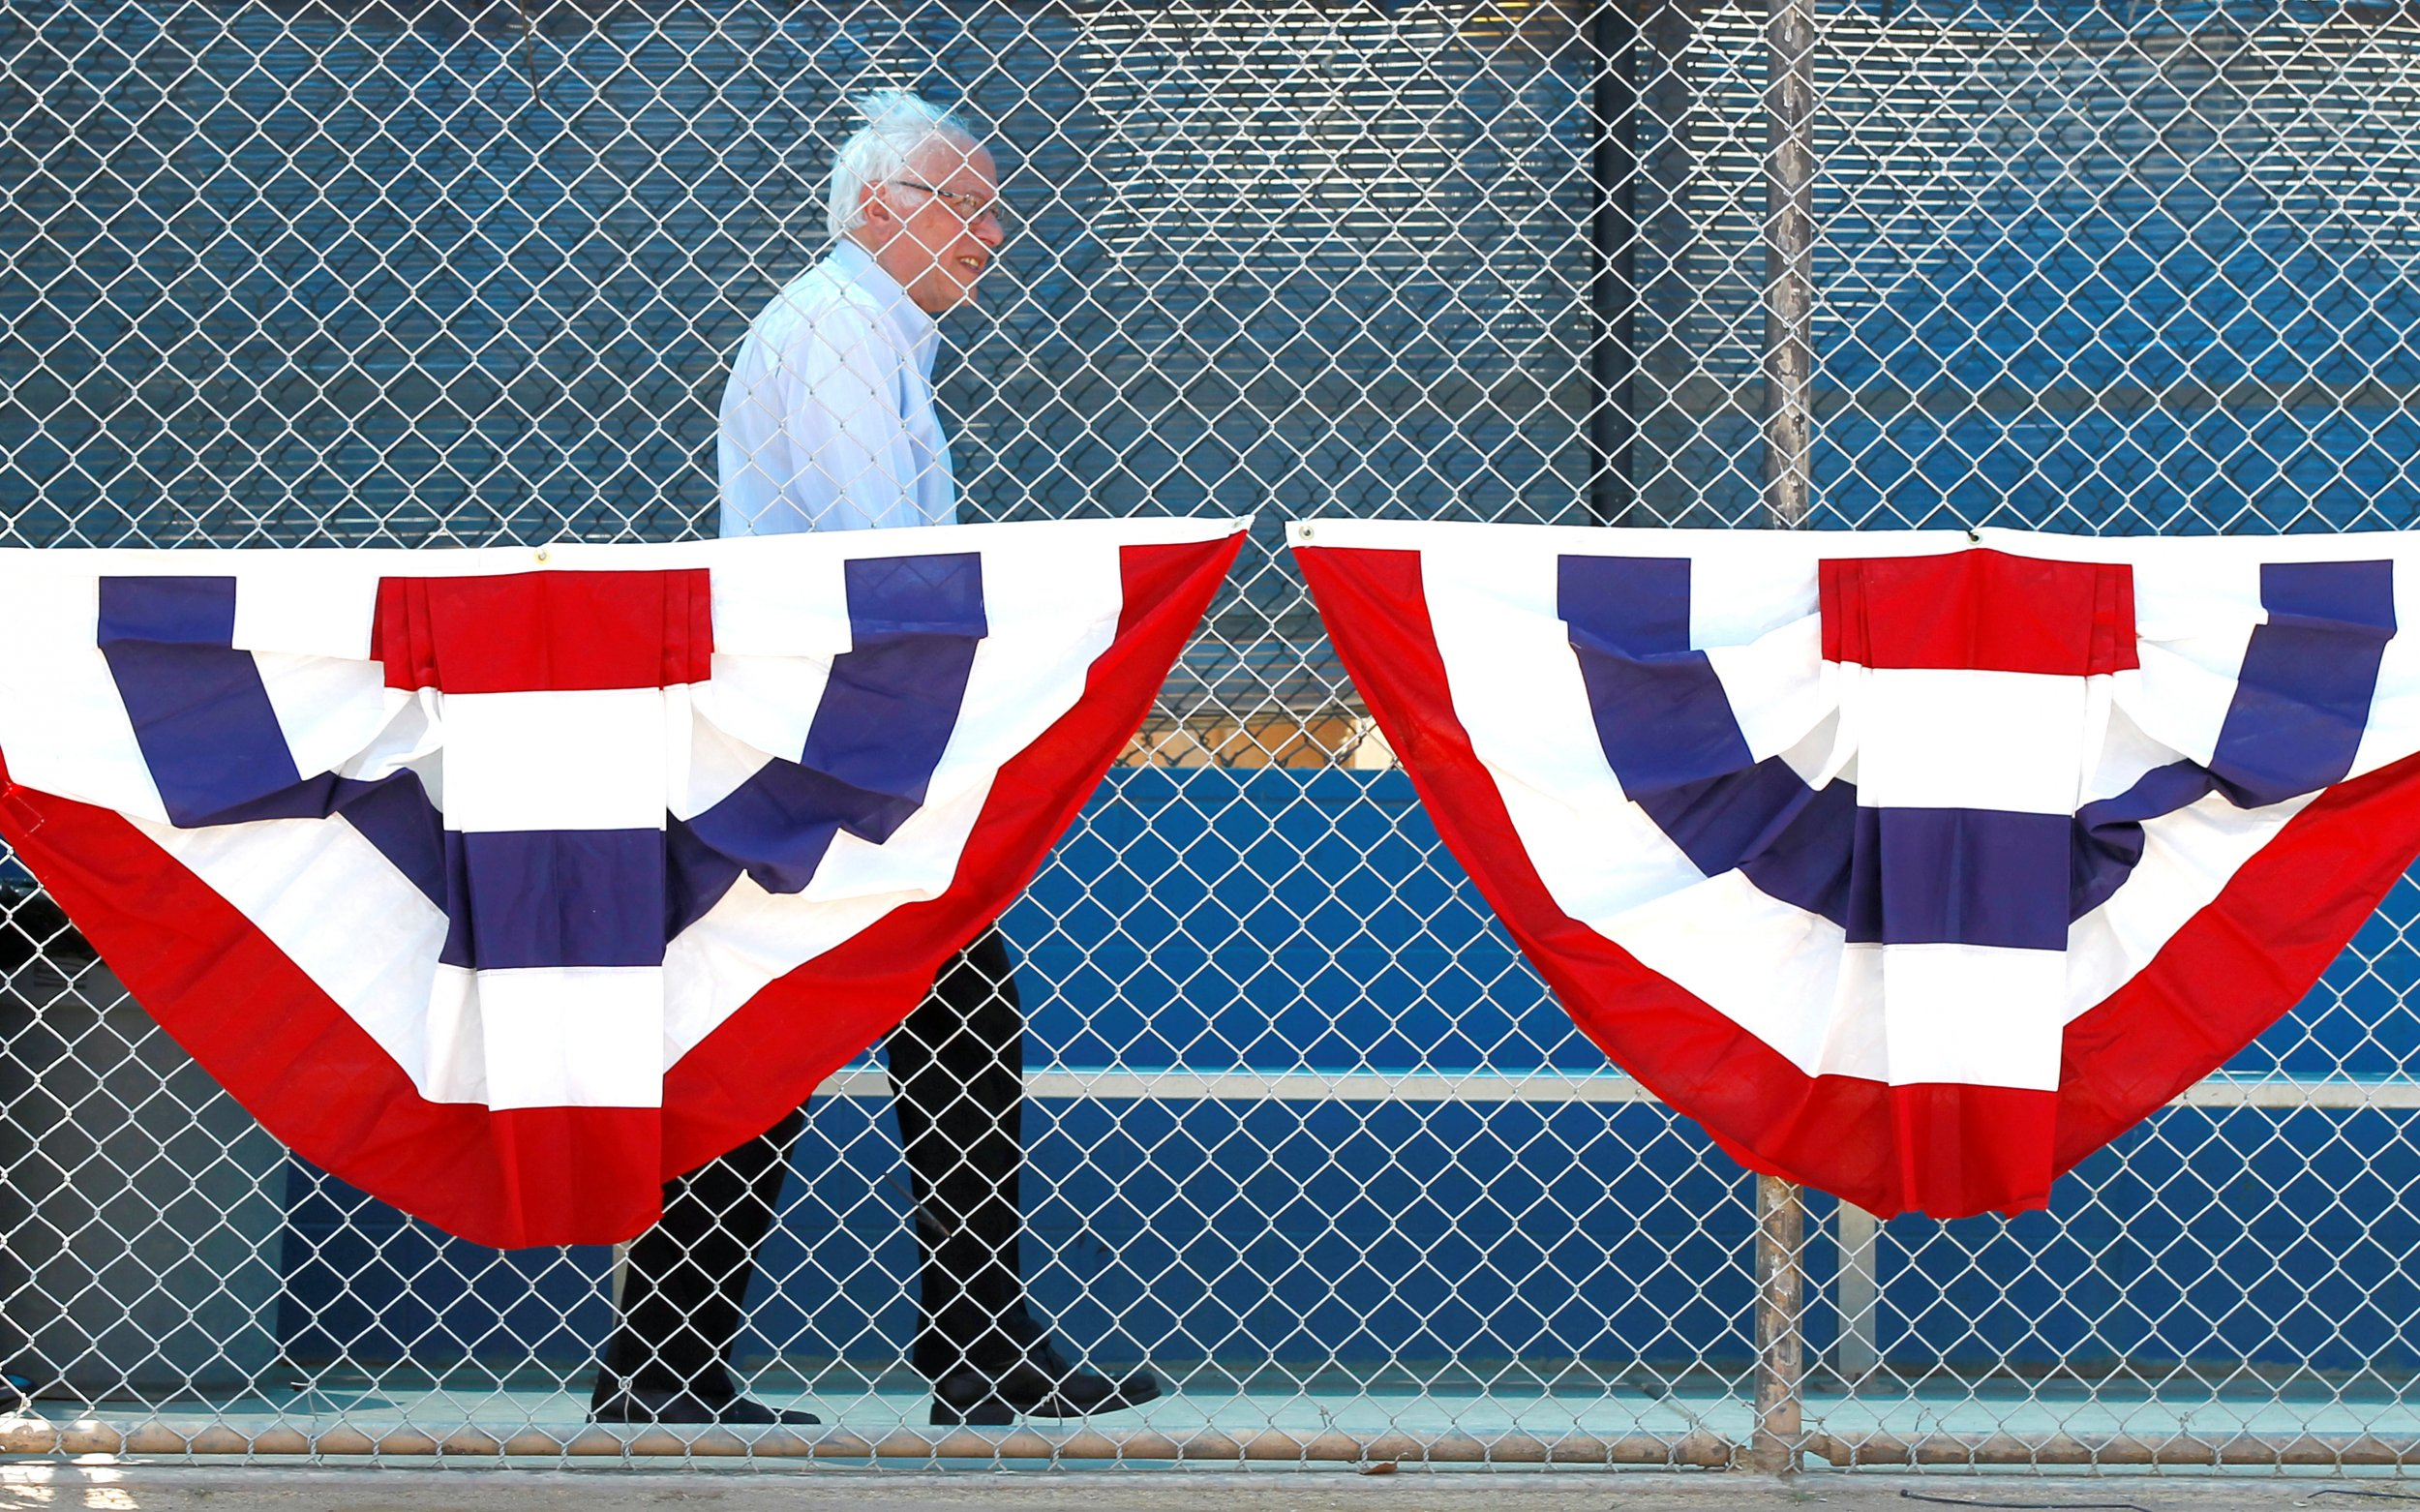 05_26_Bernie_Sanders_Walking_01